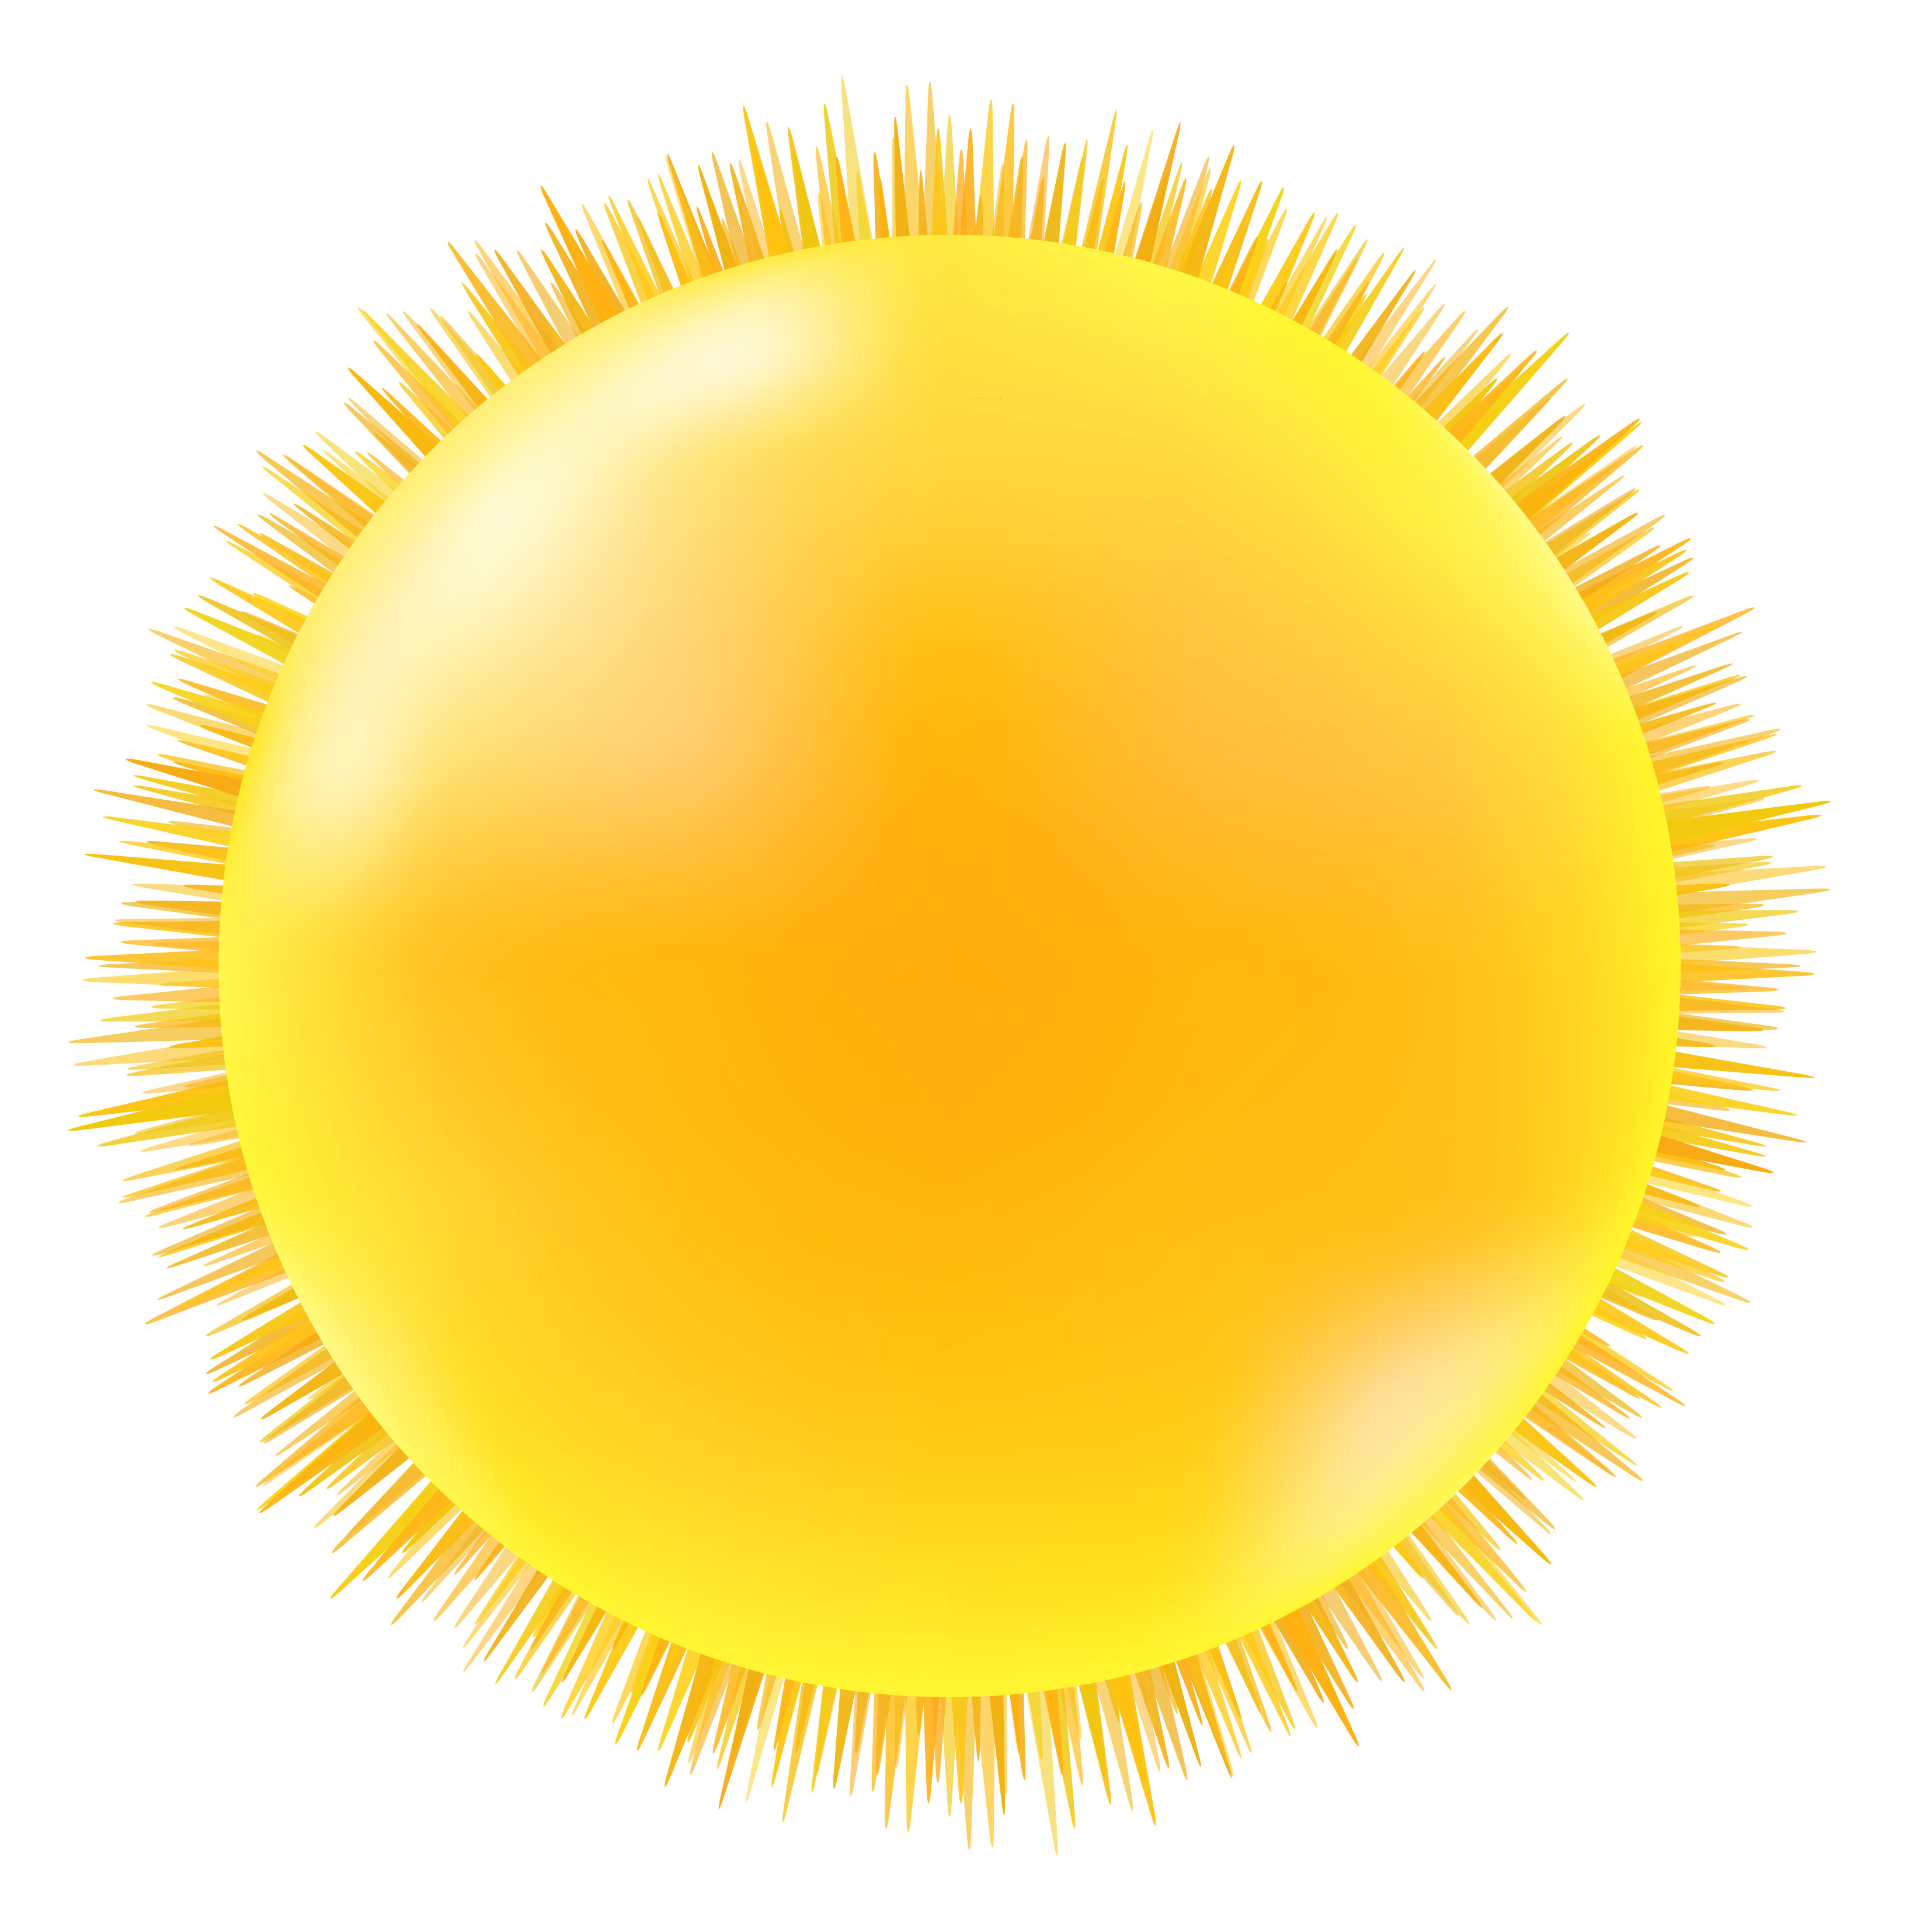 Sun png transparent. Images real free download